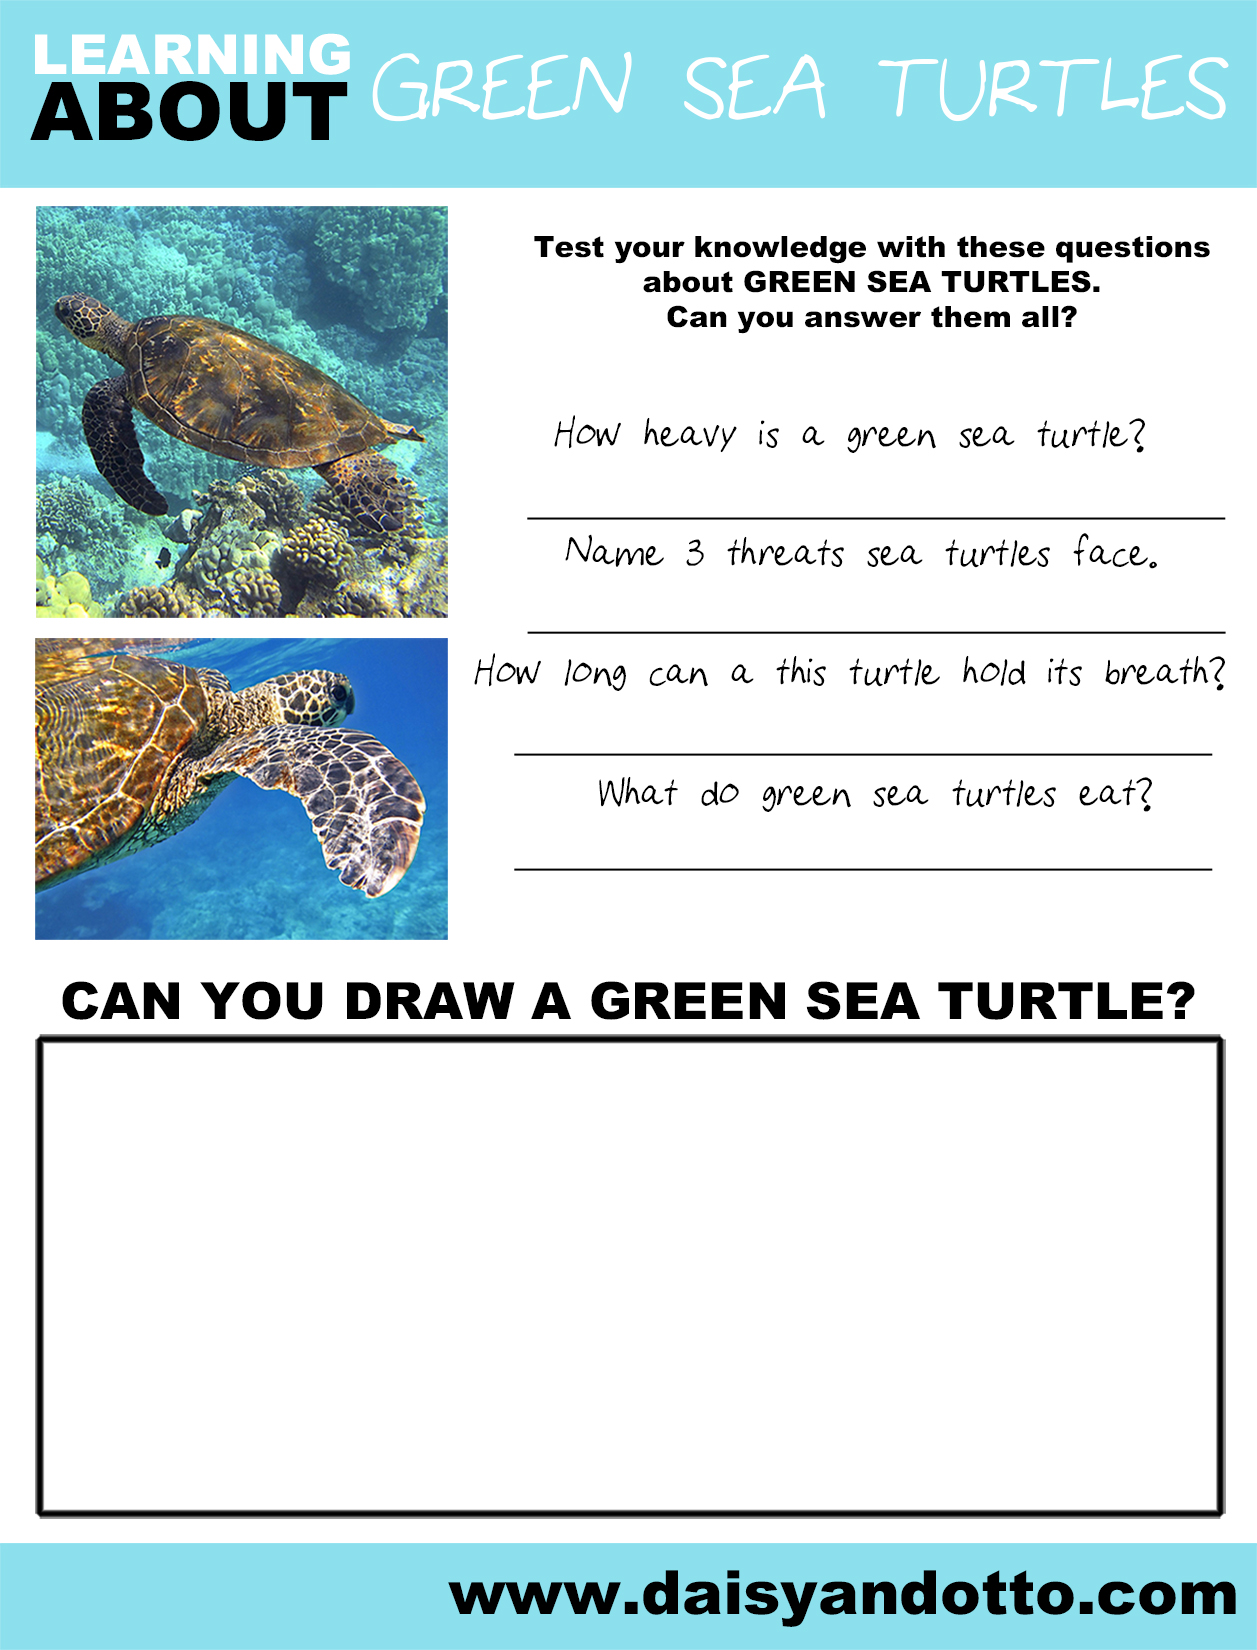 Daisy and Otto - Learning about - GREEN SEA TURTLES.jpg